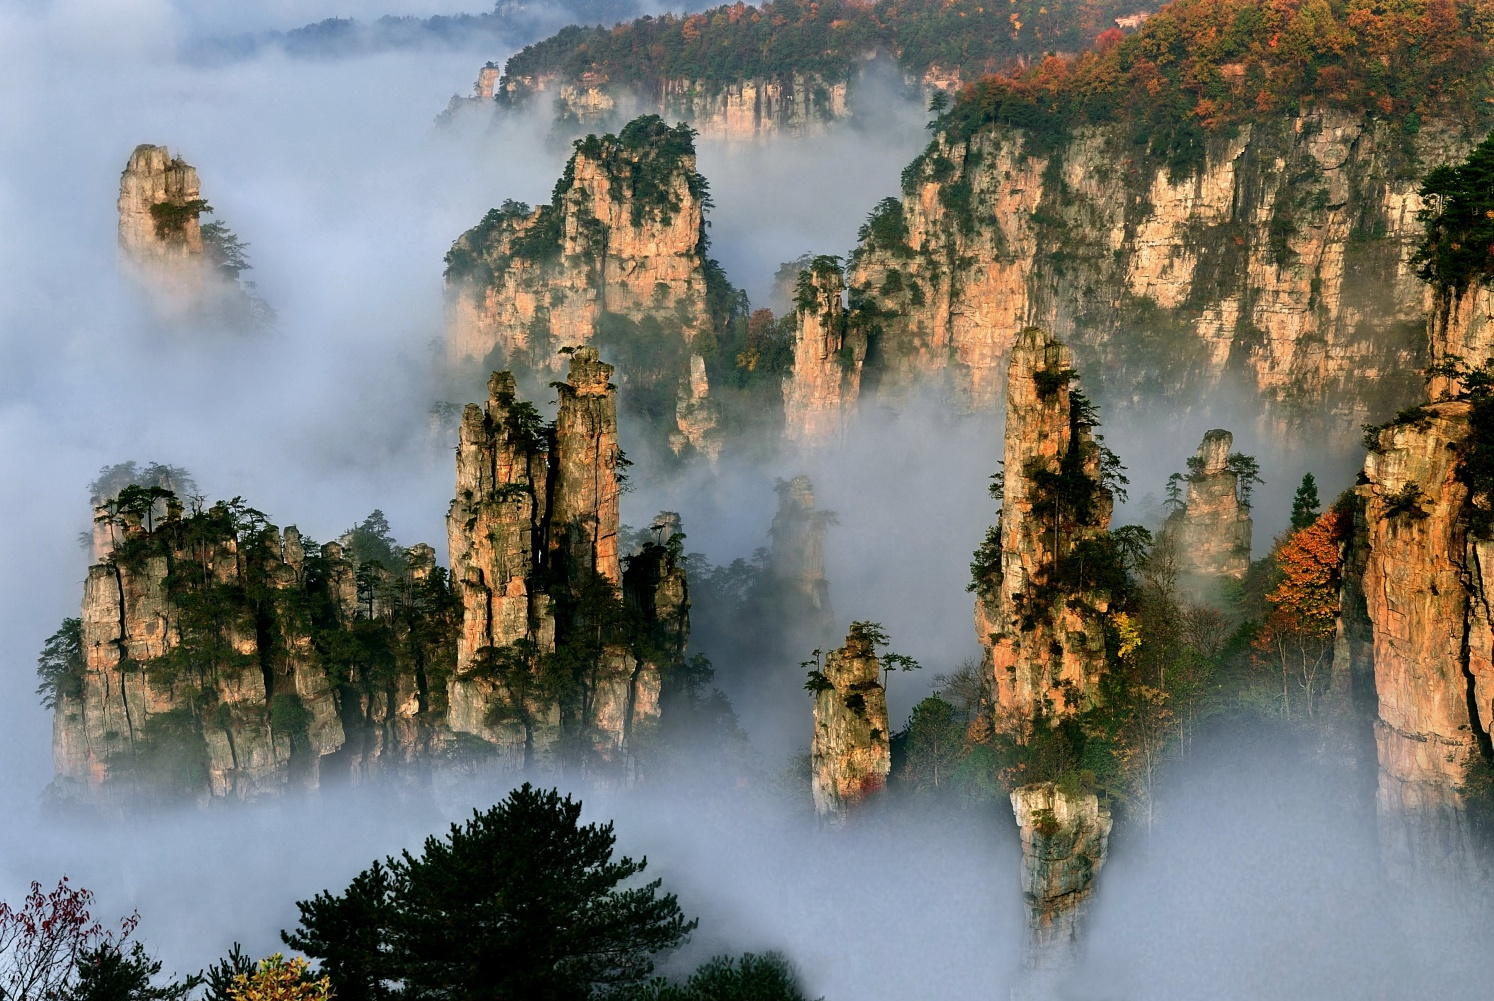 Day 8:Zhangjiajie National Forest Park - Soul, senses and cameras at the ready. Spend the day in Zhangjiajie, the jewel in Hunan's glimmering crown, with its enchanting and captivating sandstone and quartzite forest.